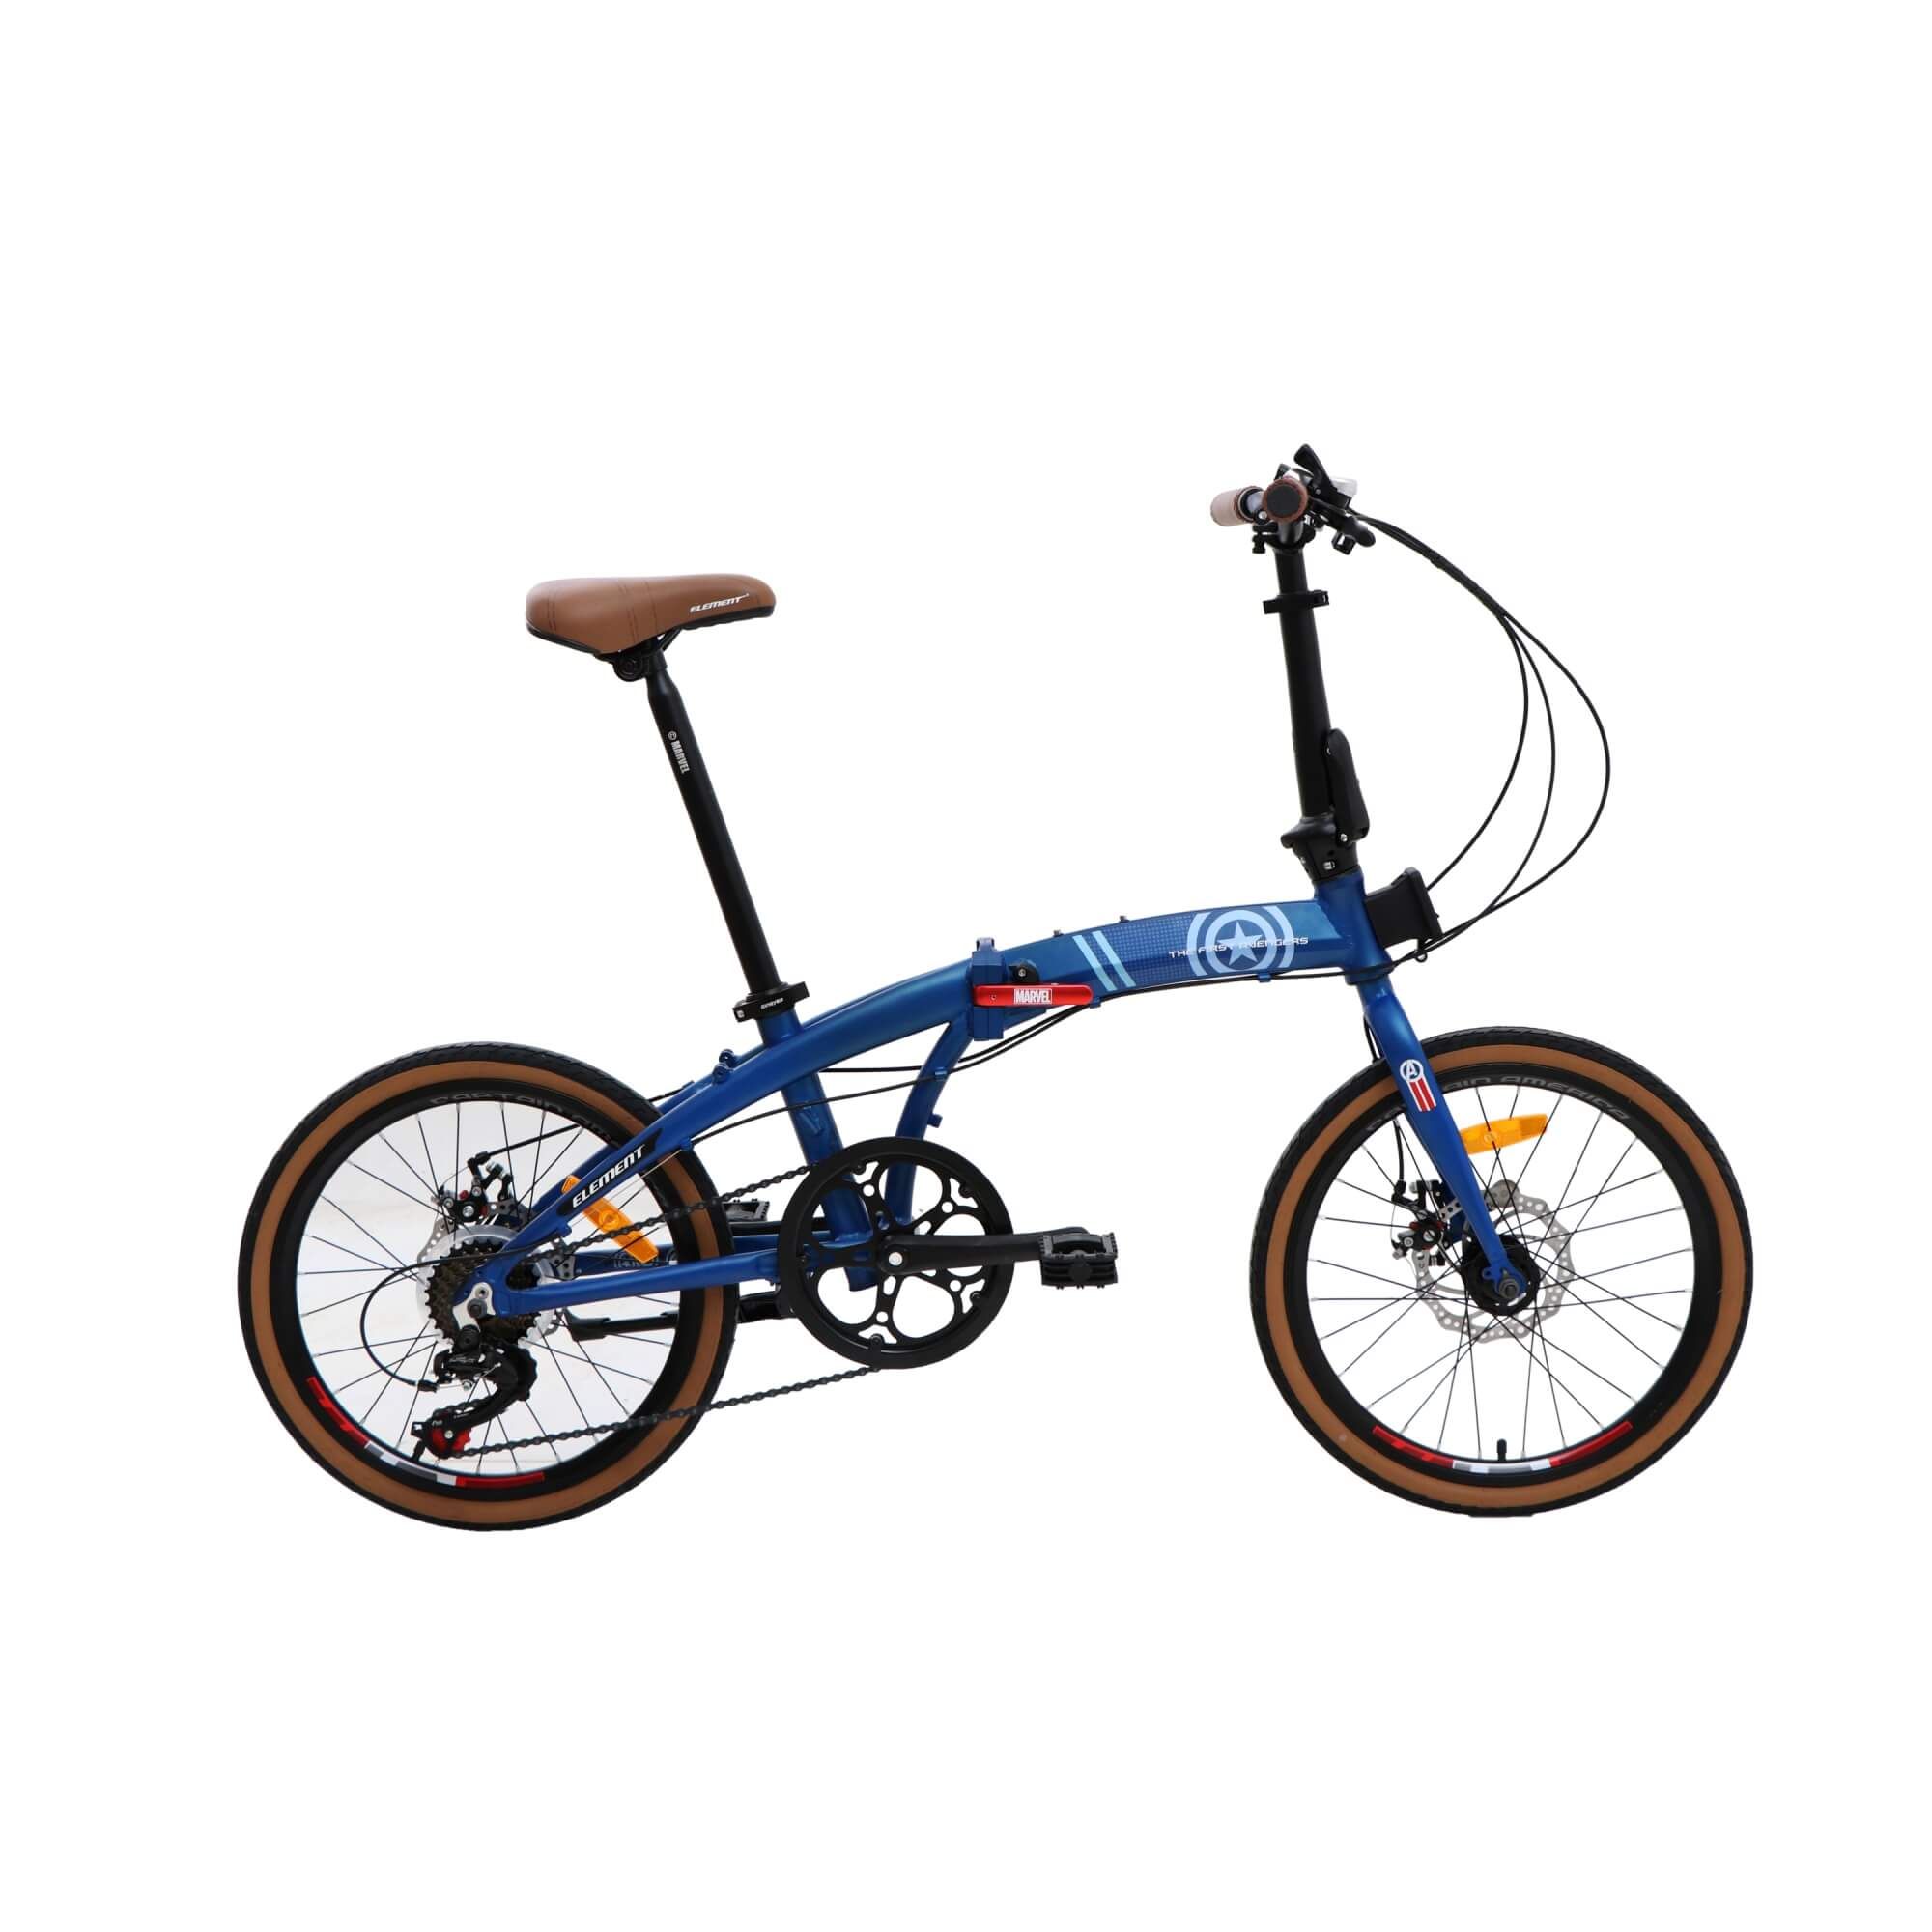 Element Folding Bike Ecosmo Captain America Edition